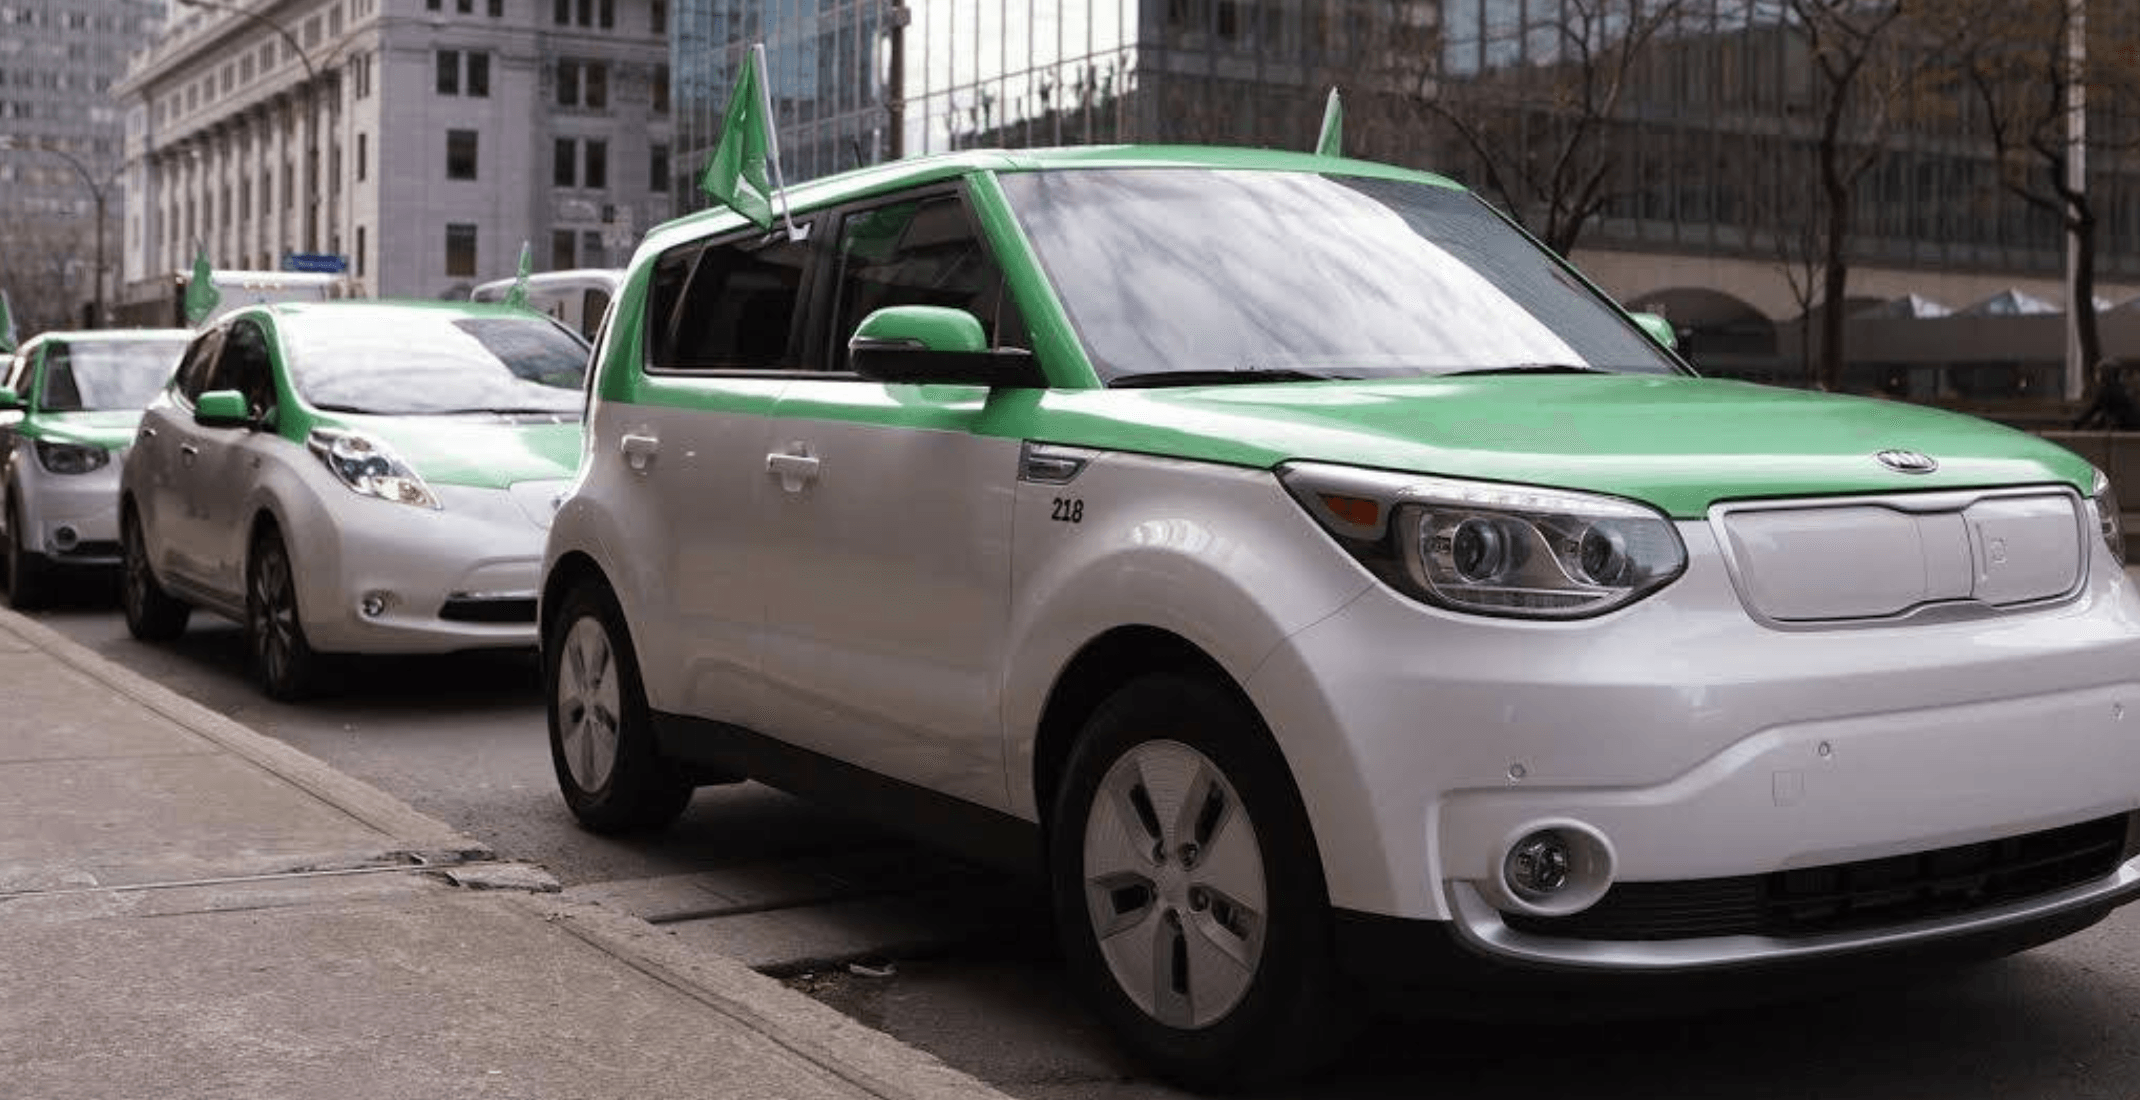 Montreal to see 200 more Téo Taxis on its streets thanks to $17M investment